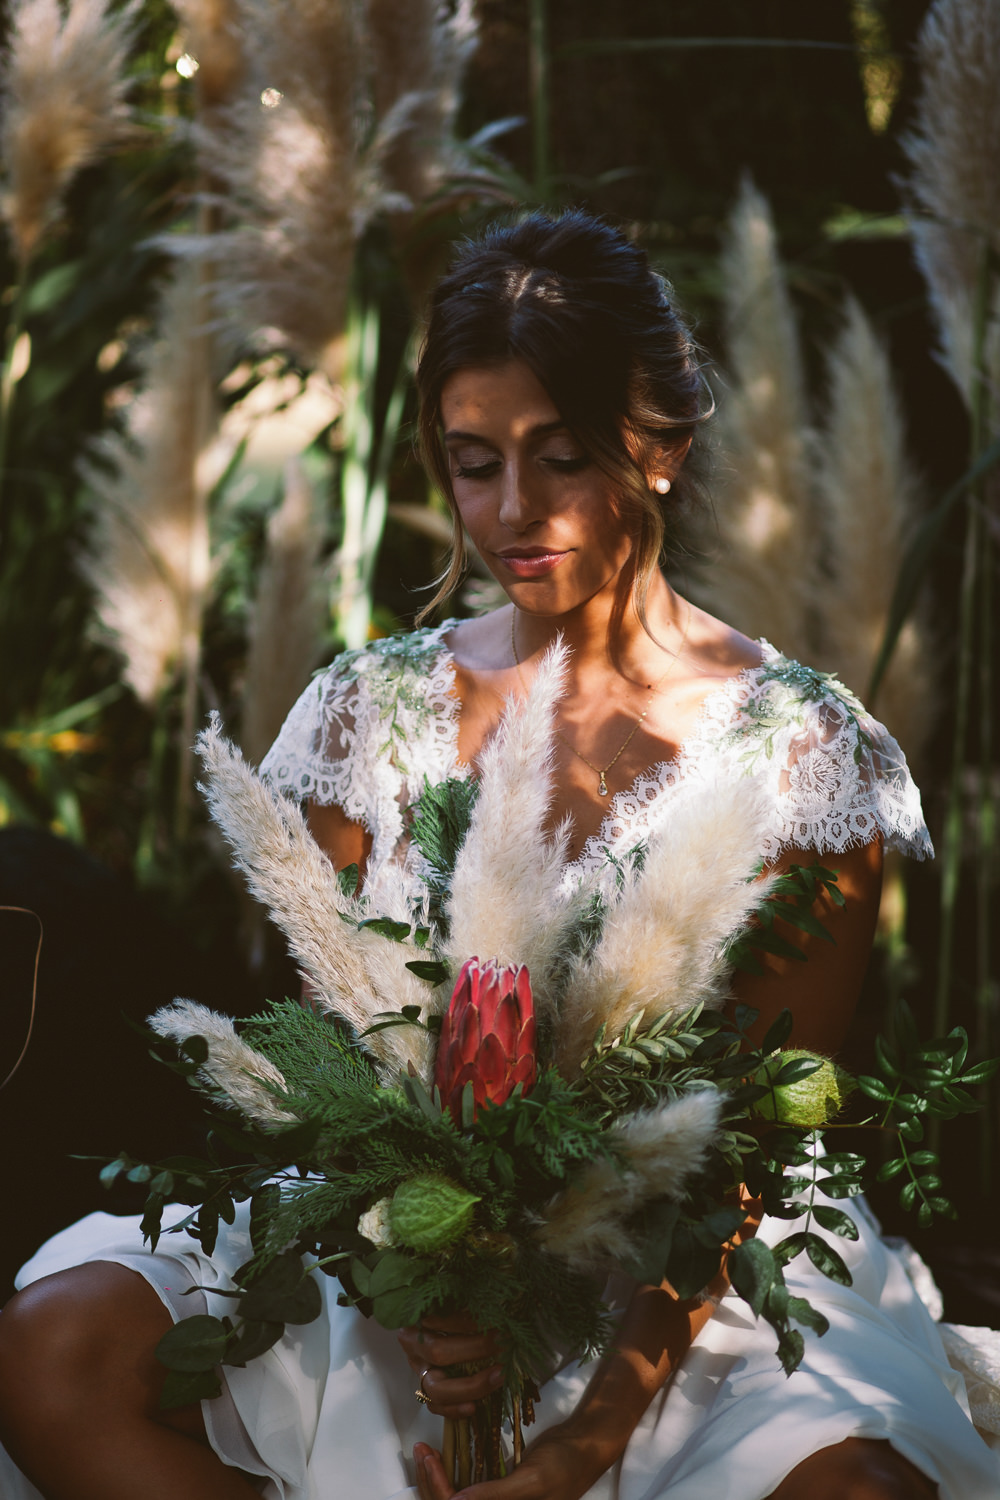 Bride Bridal Bouquet Flowers Protea Greenery Foliage Botanical Dark Green Velvet Pampas Grass Wedding Ideas Bárbara Araújo Photography